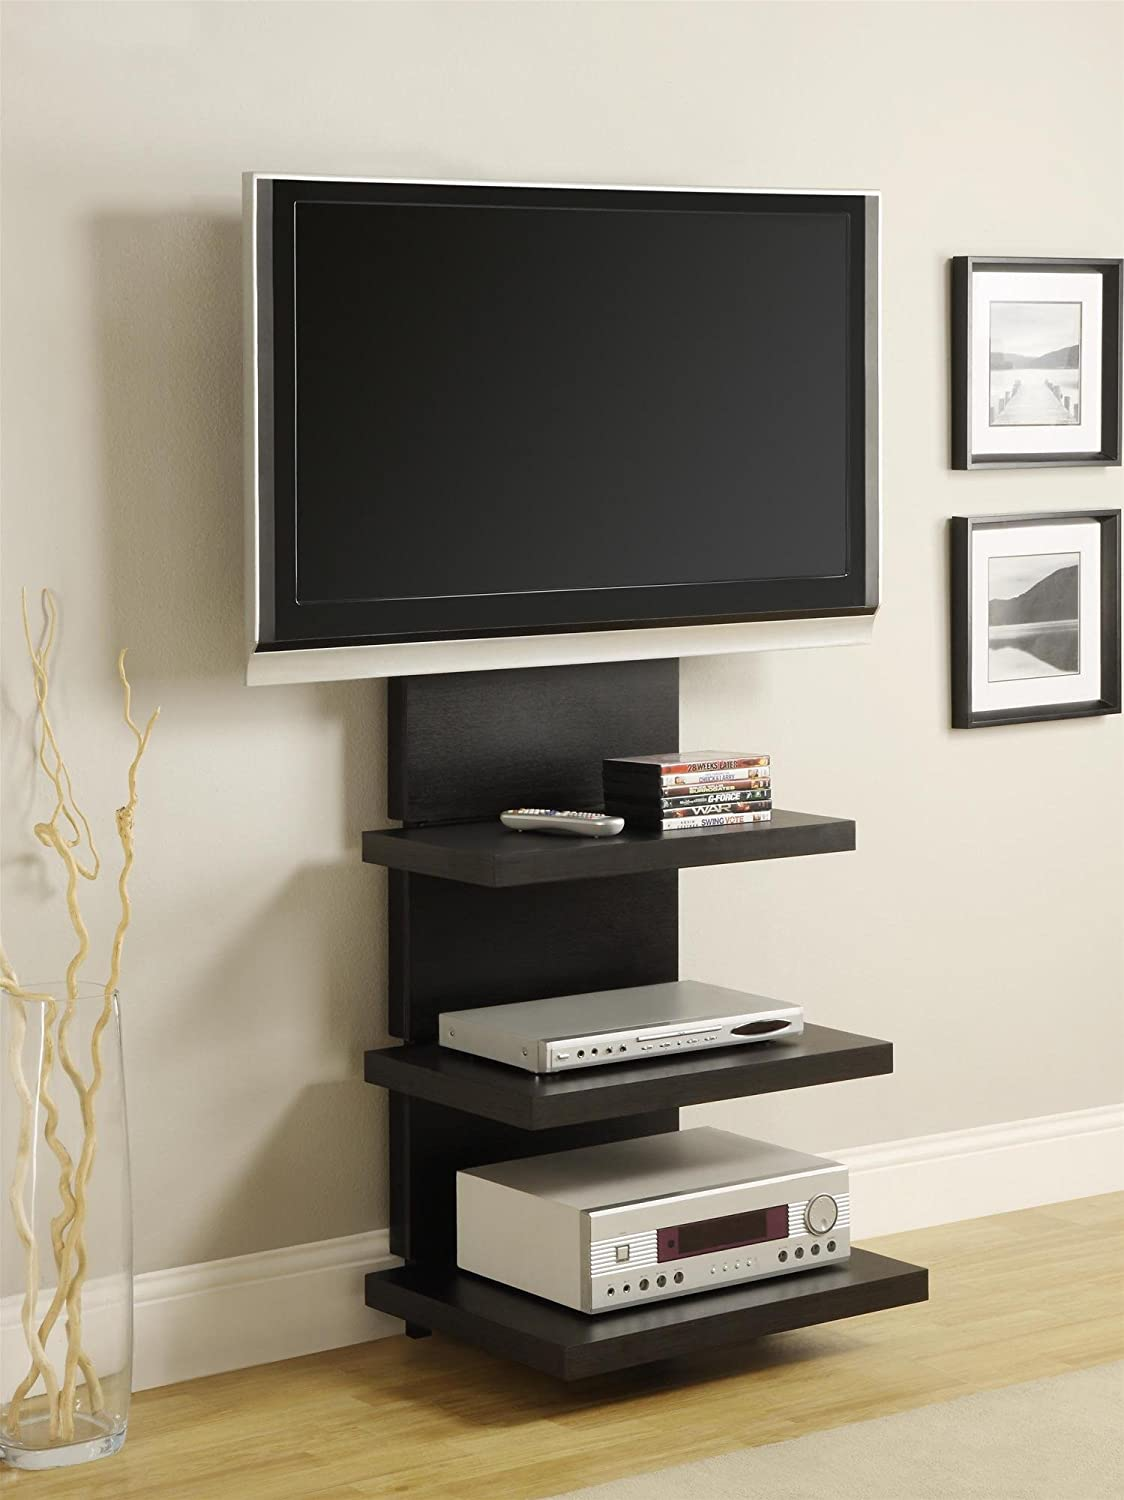 tv stand with shelves Amazon.com: Ameriwood Home Elevation TV Stand for TVs 60